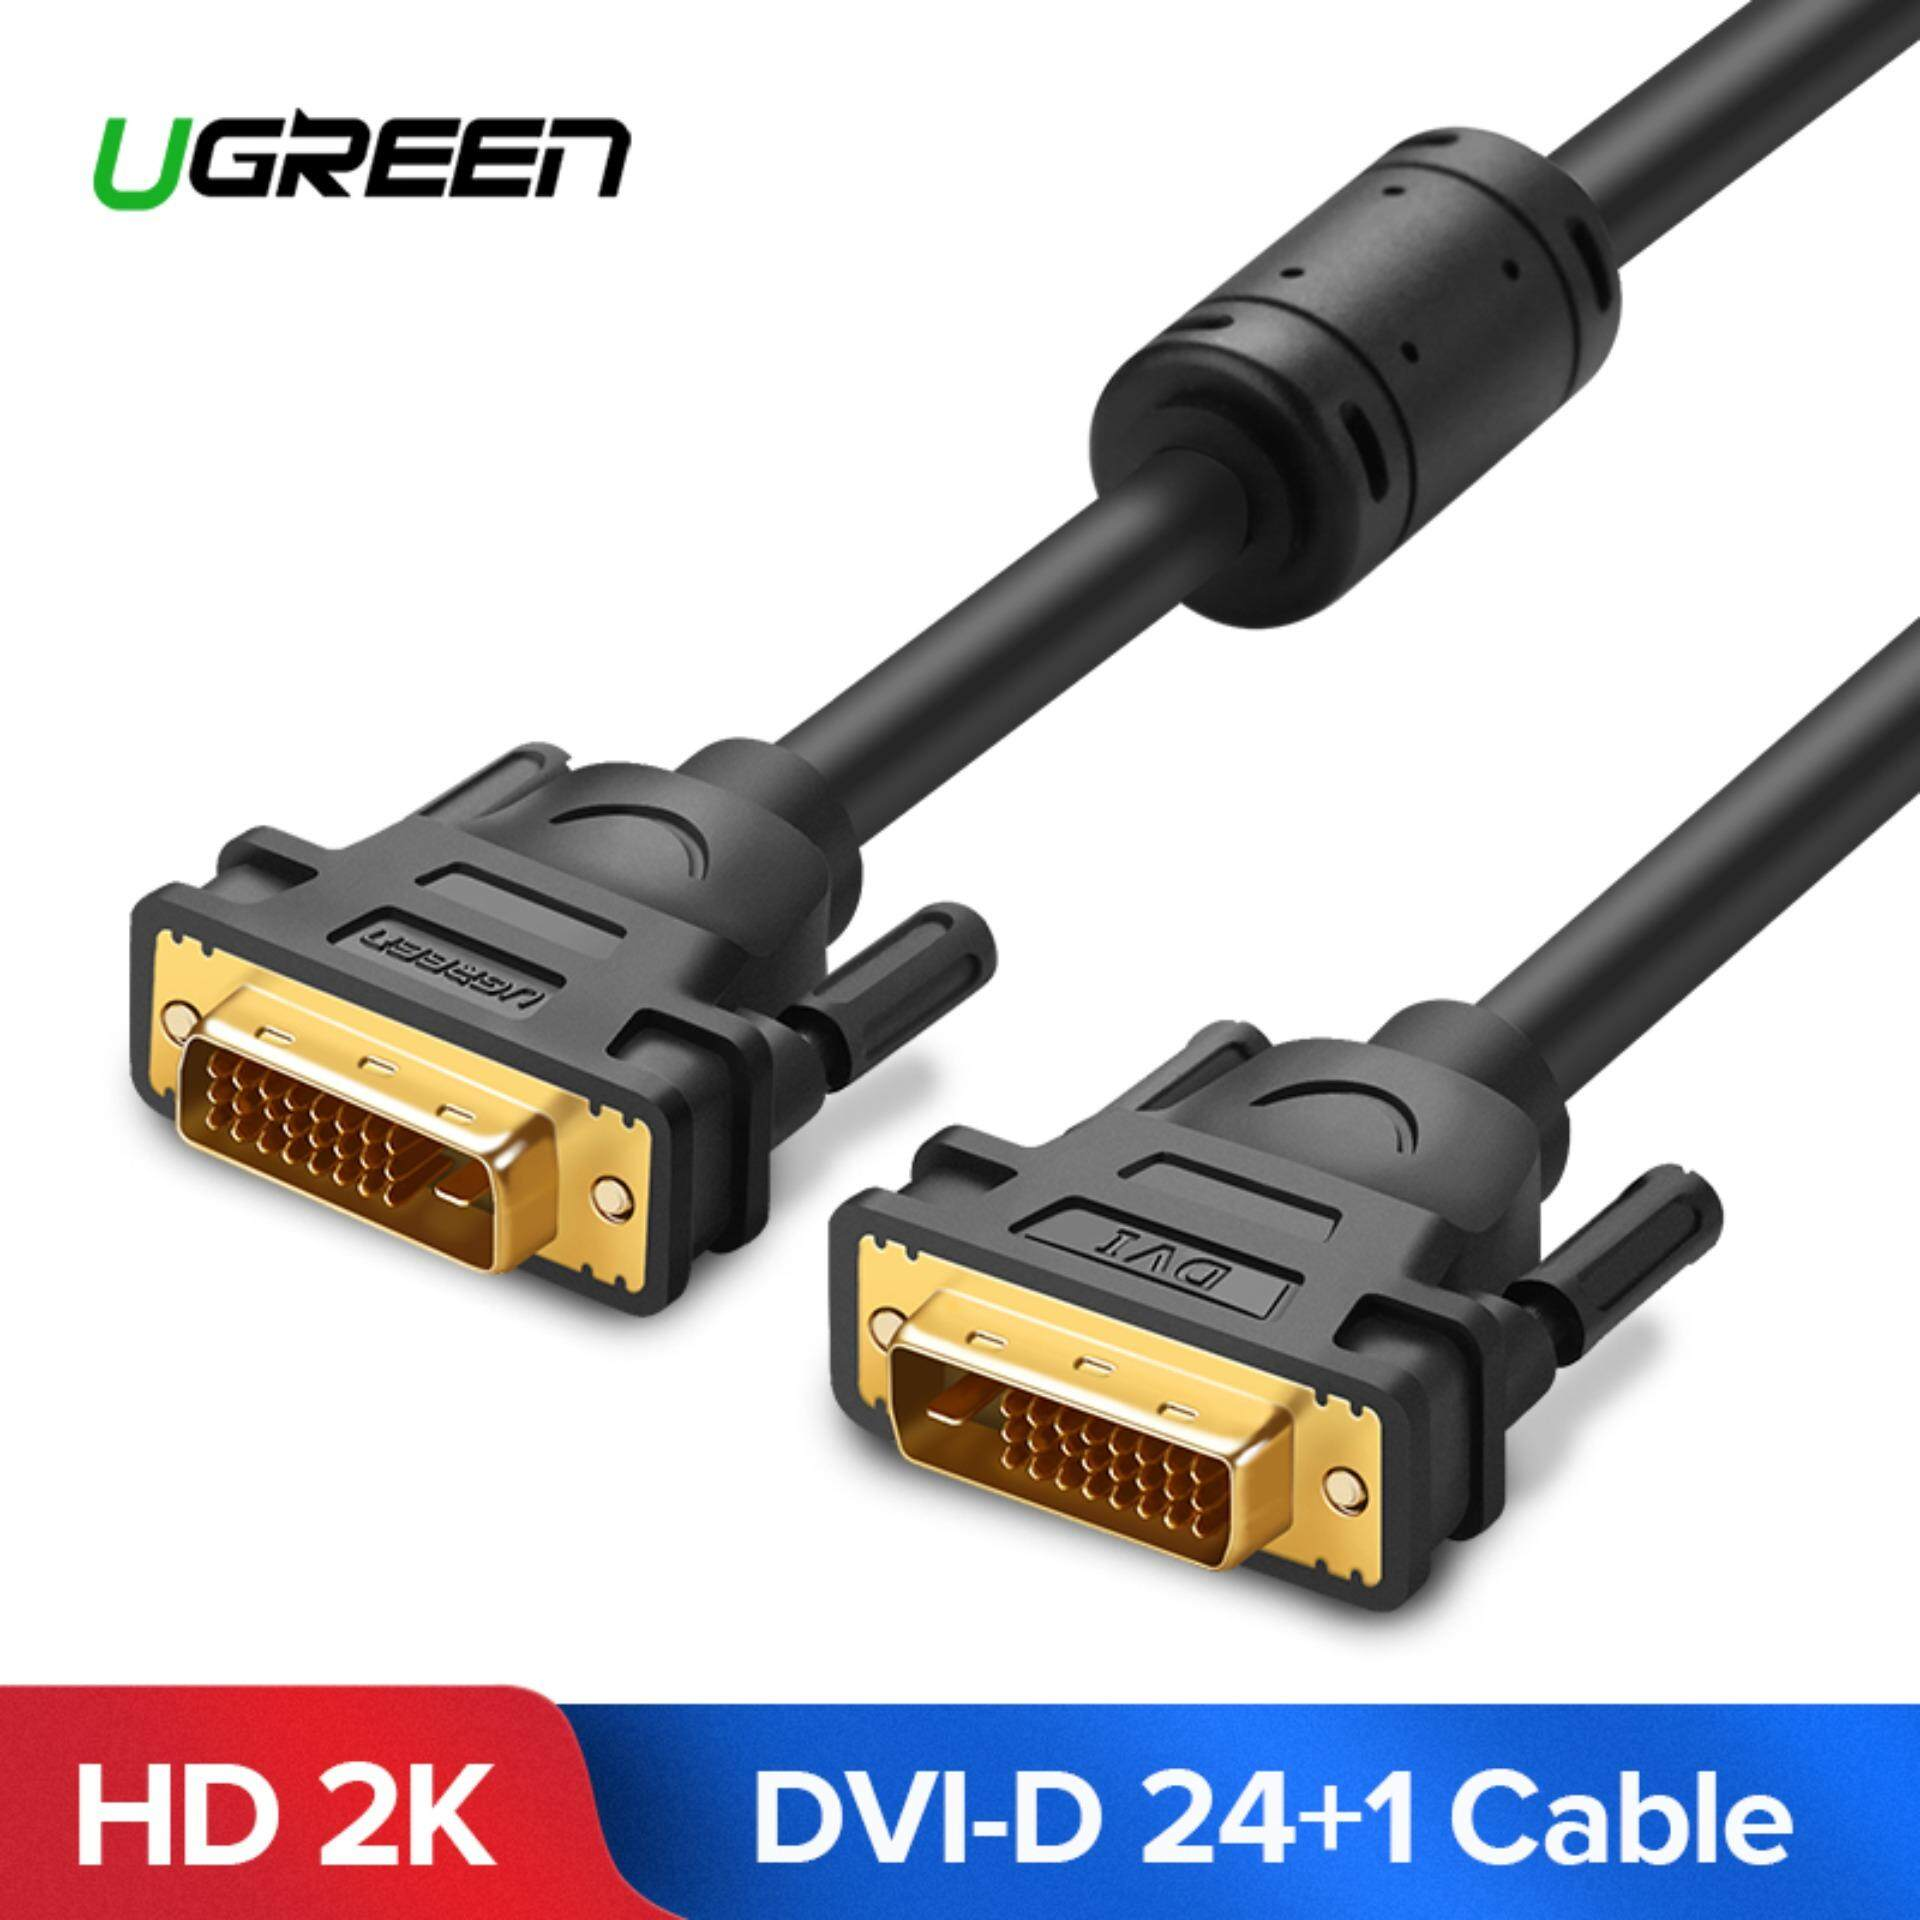 DVI-D Dual Link Male Digital Video Cable for 1080p Computer Monitor HD Screen